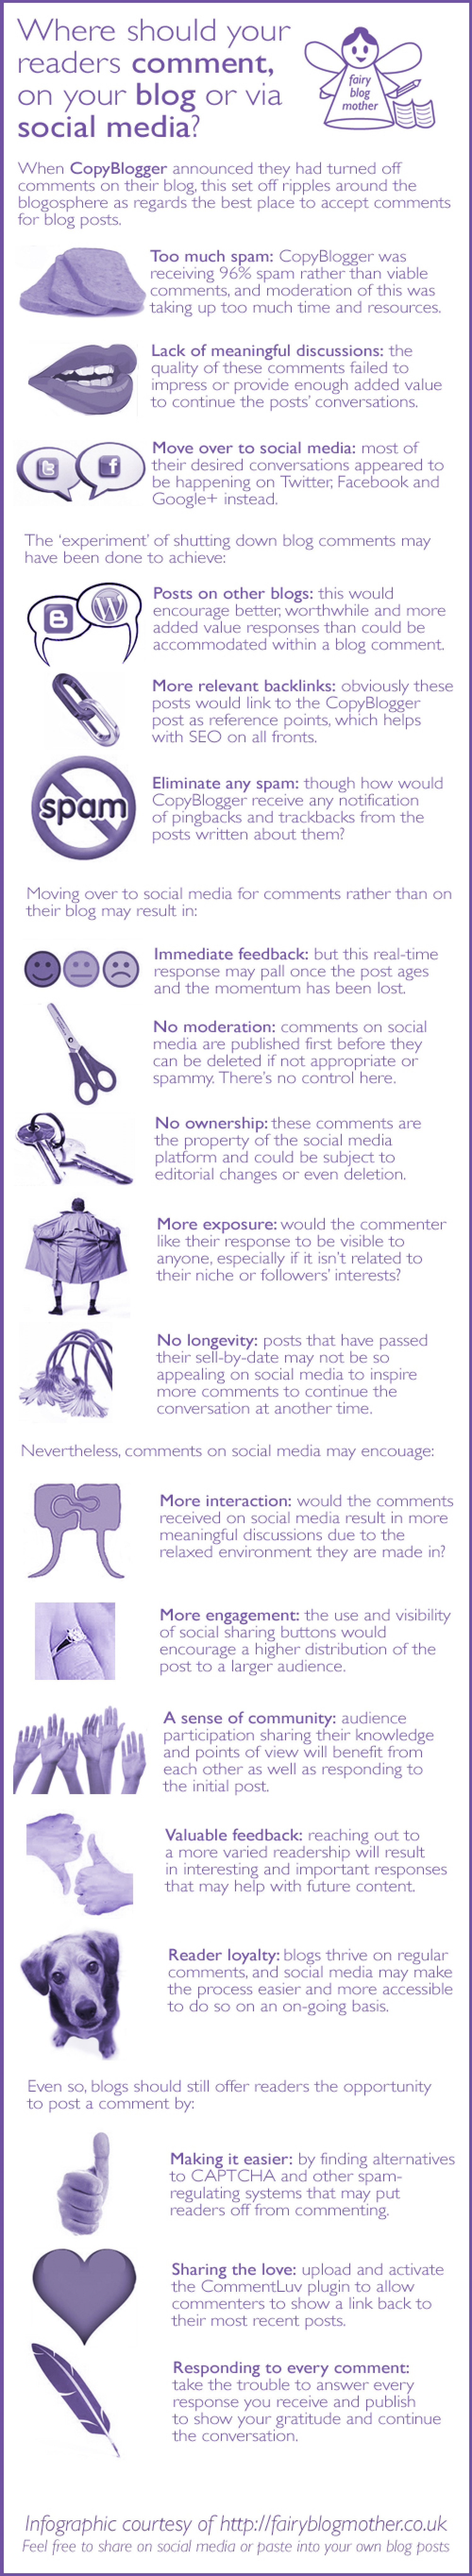 Where should your readers comment, on your blog or via social media? Infographic